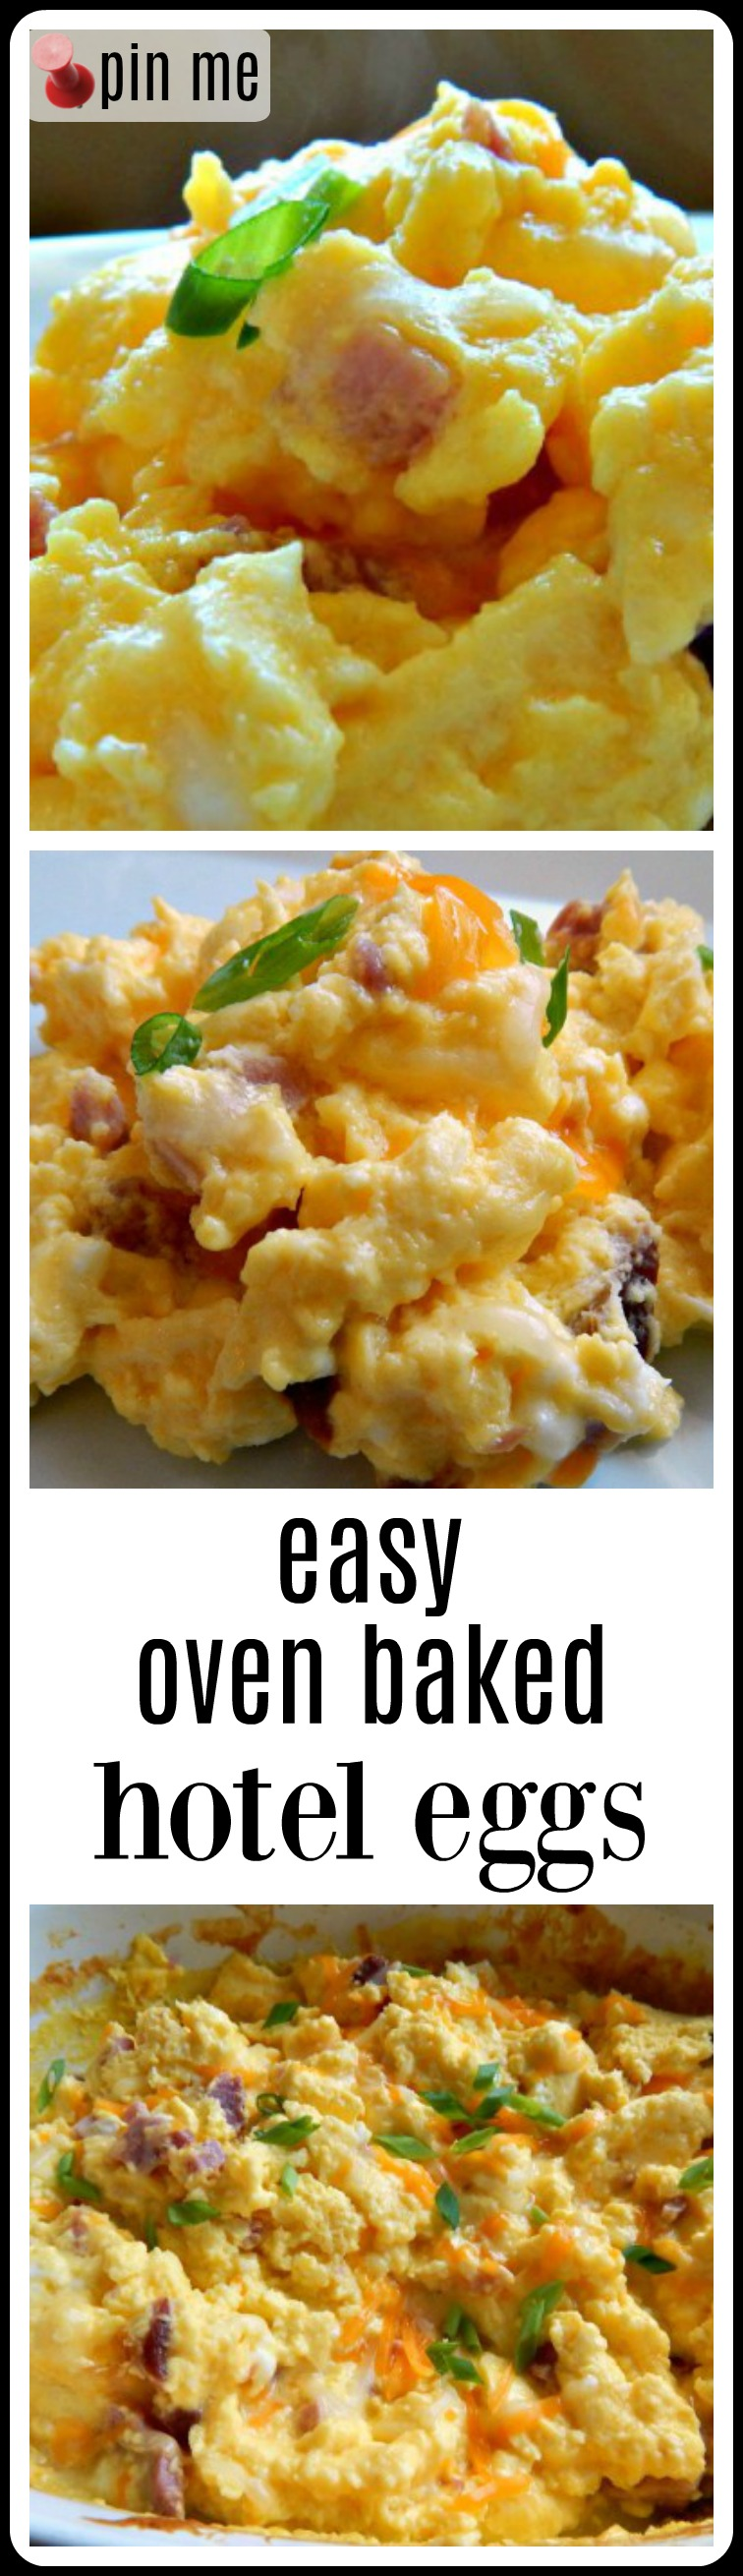 Oven Baked or Hotel Eggs are so fluffy and perfect - they feed a crowd and free up your stovetop for other breakfasty things.